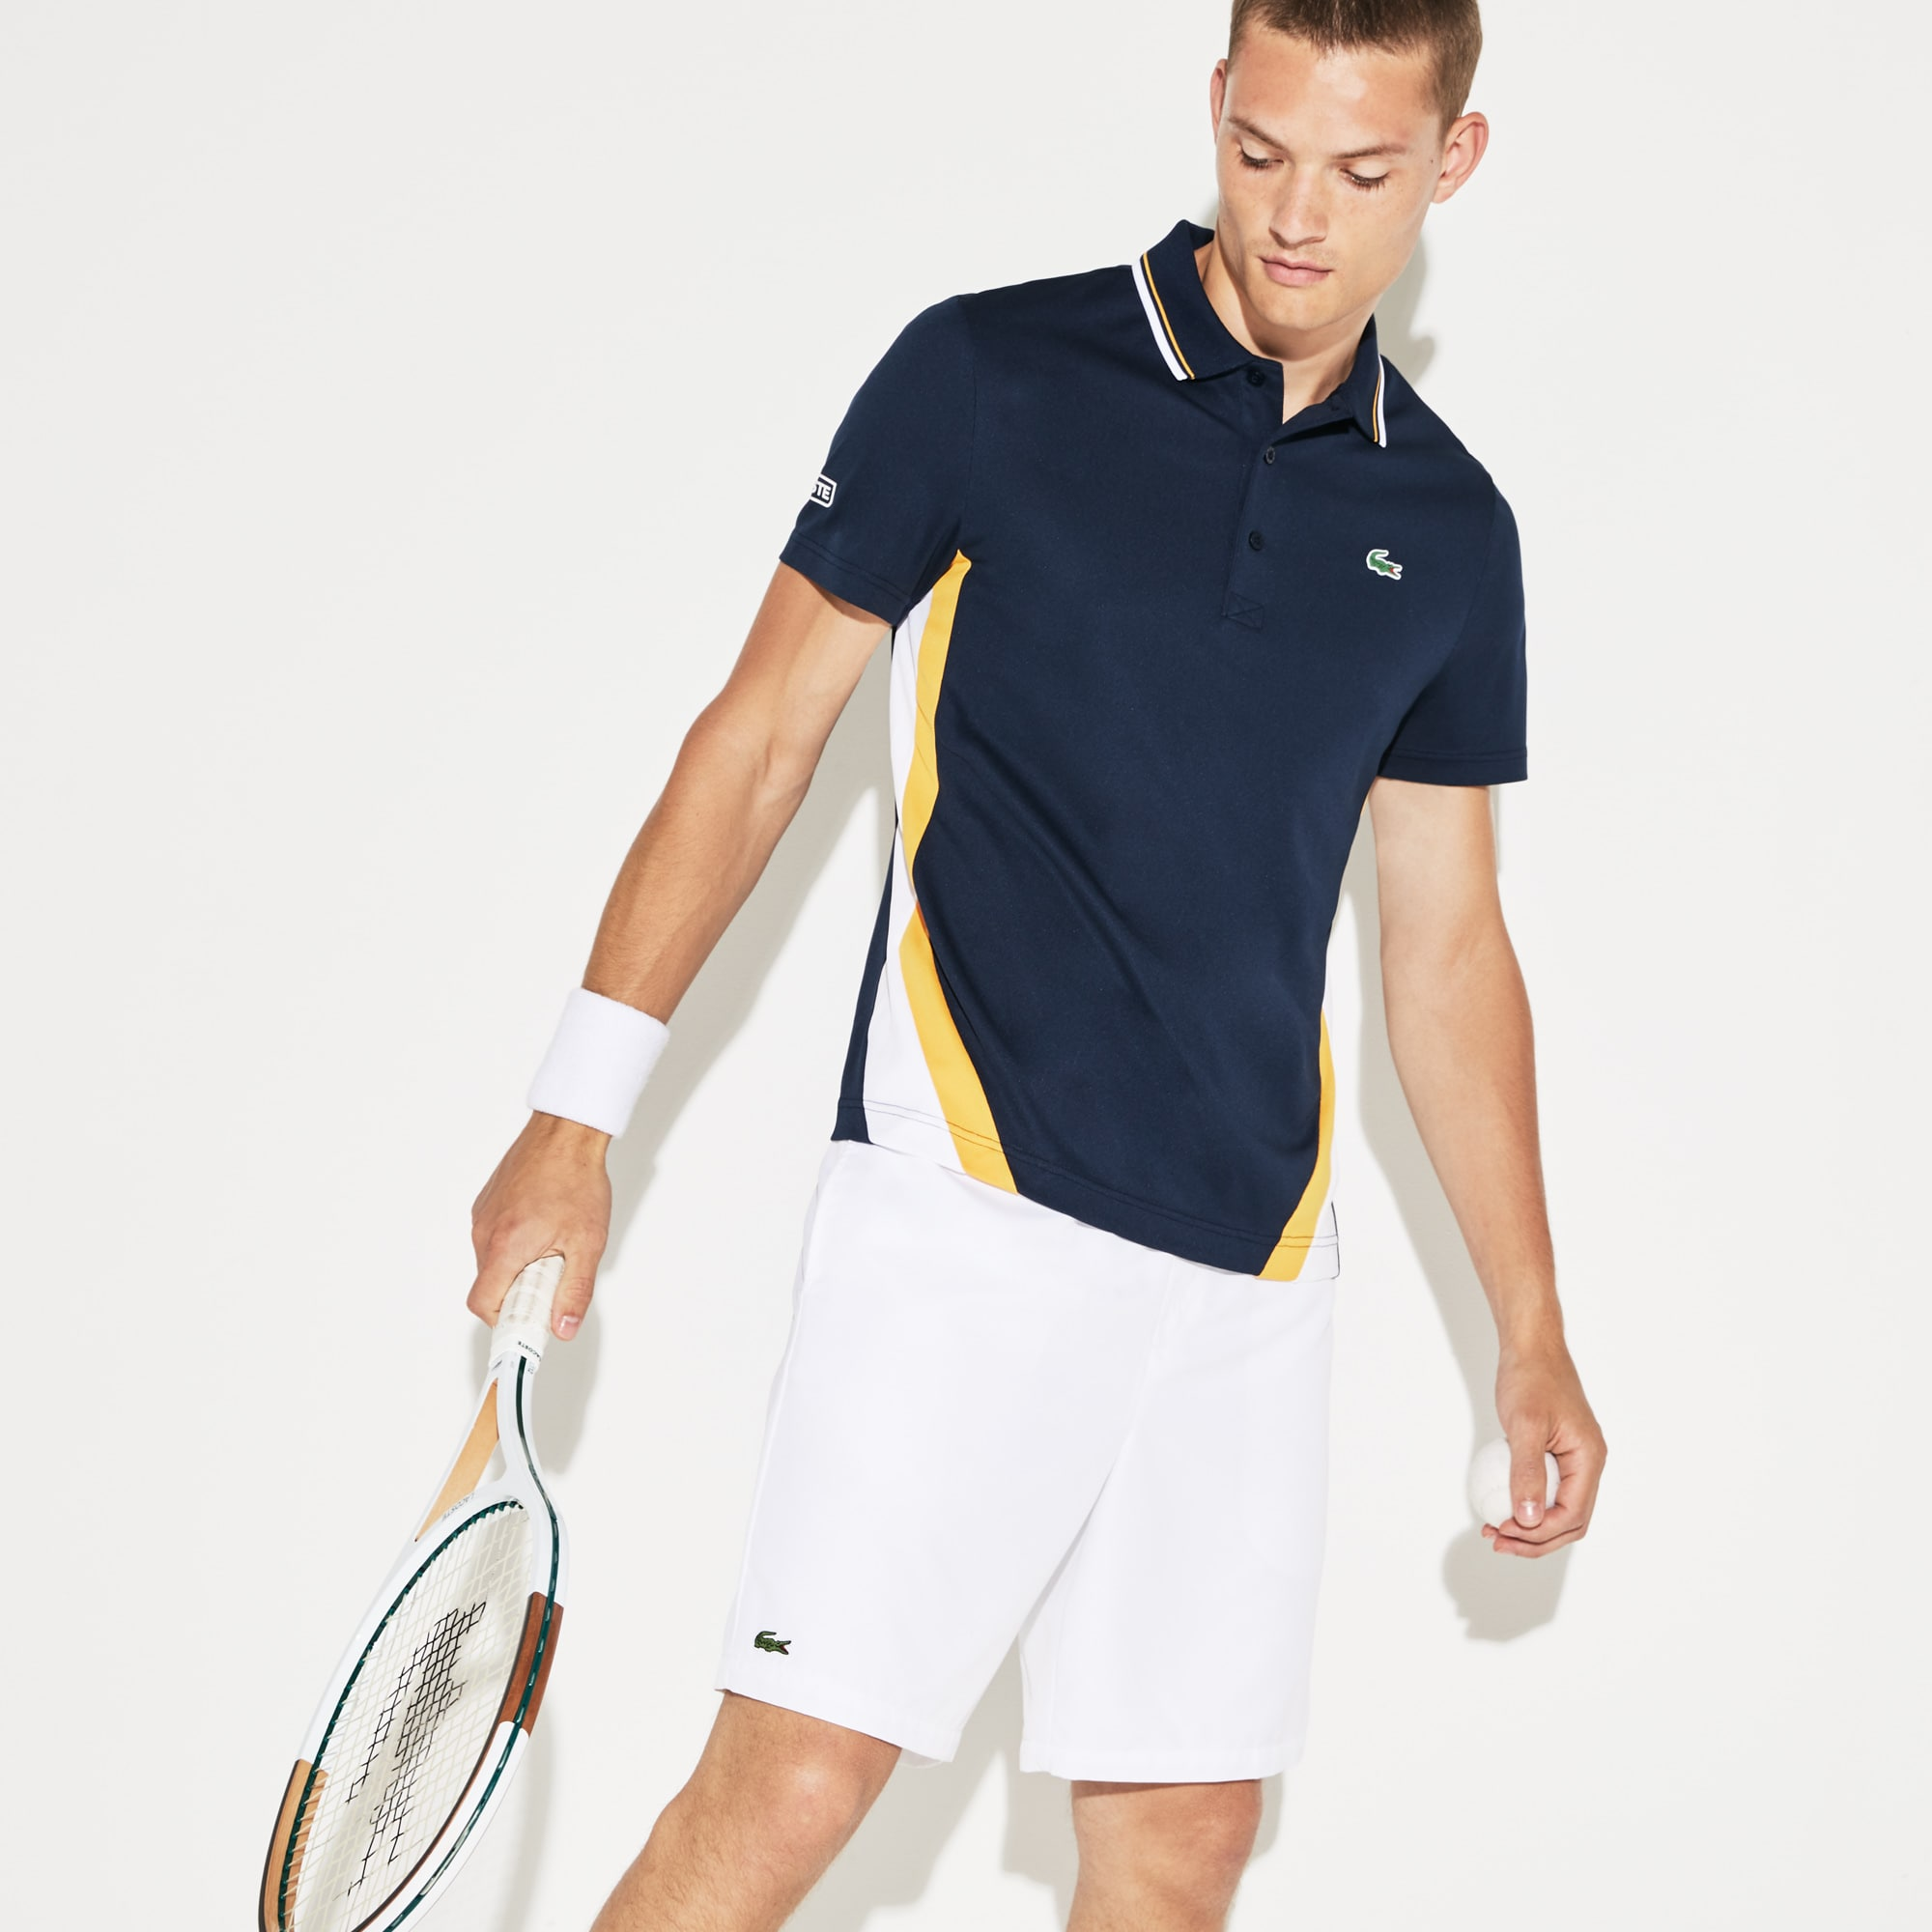 Men's SPORT Colorblock Bands Technical Piqué Tennis Polo